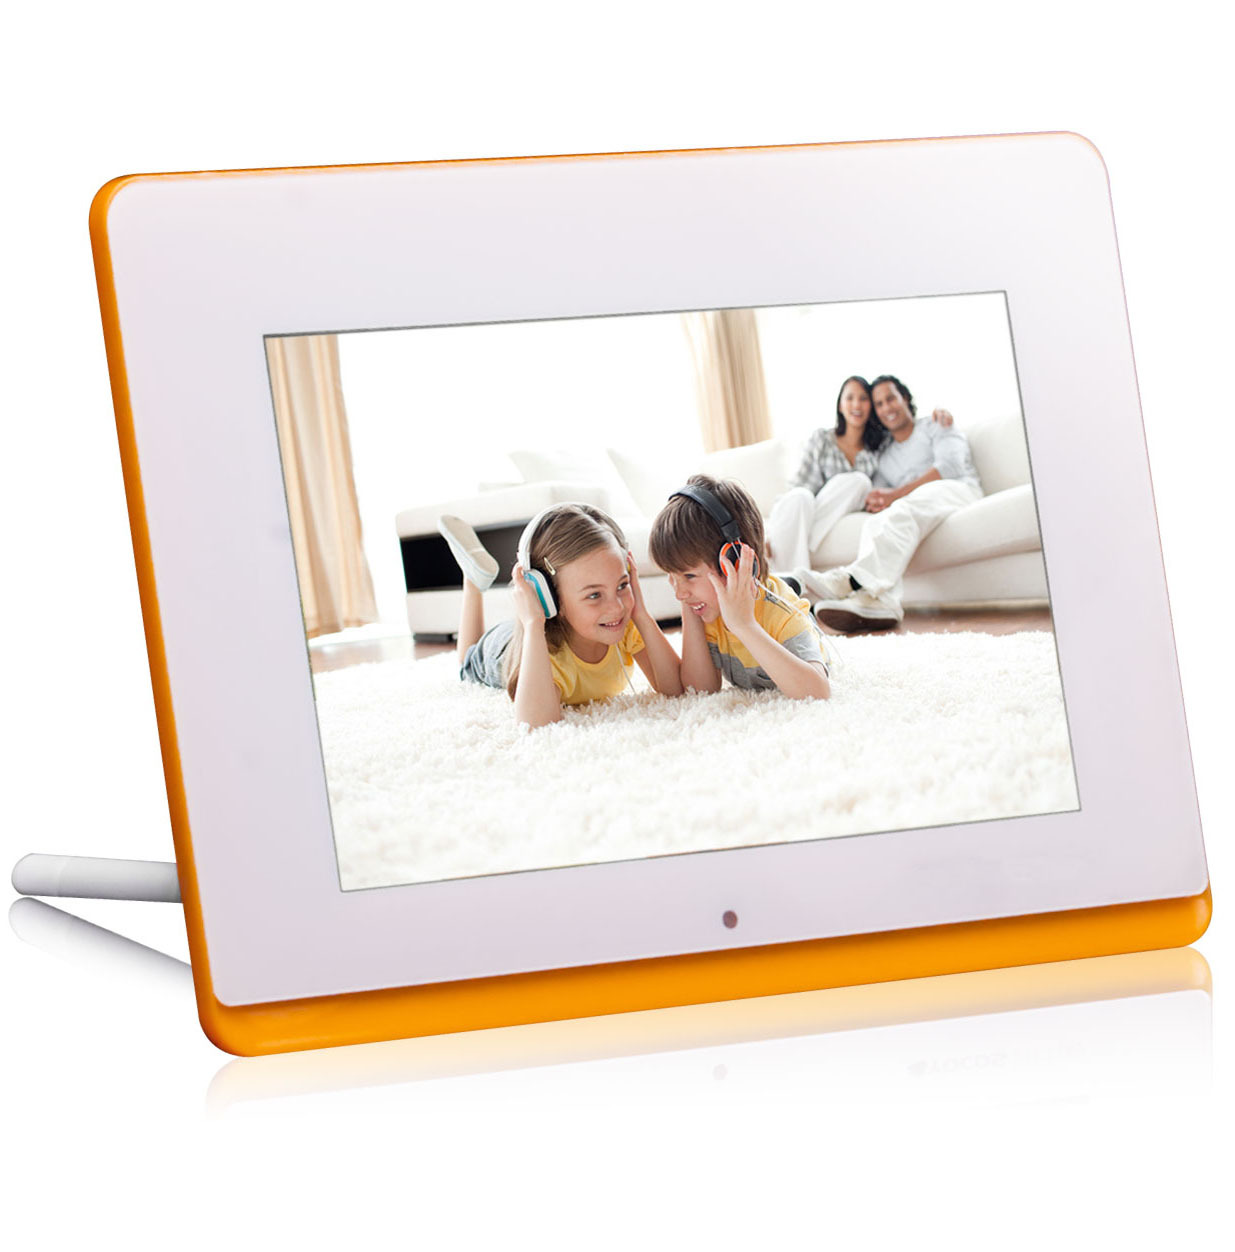 7 ultra-thin hd multifunctional digital photo frame digital photo album